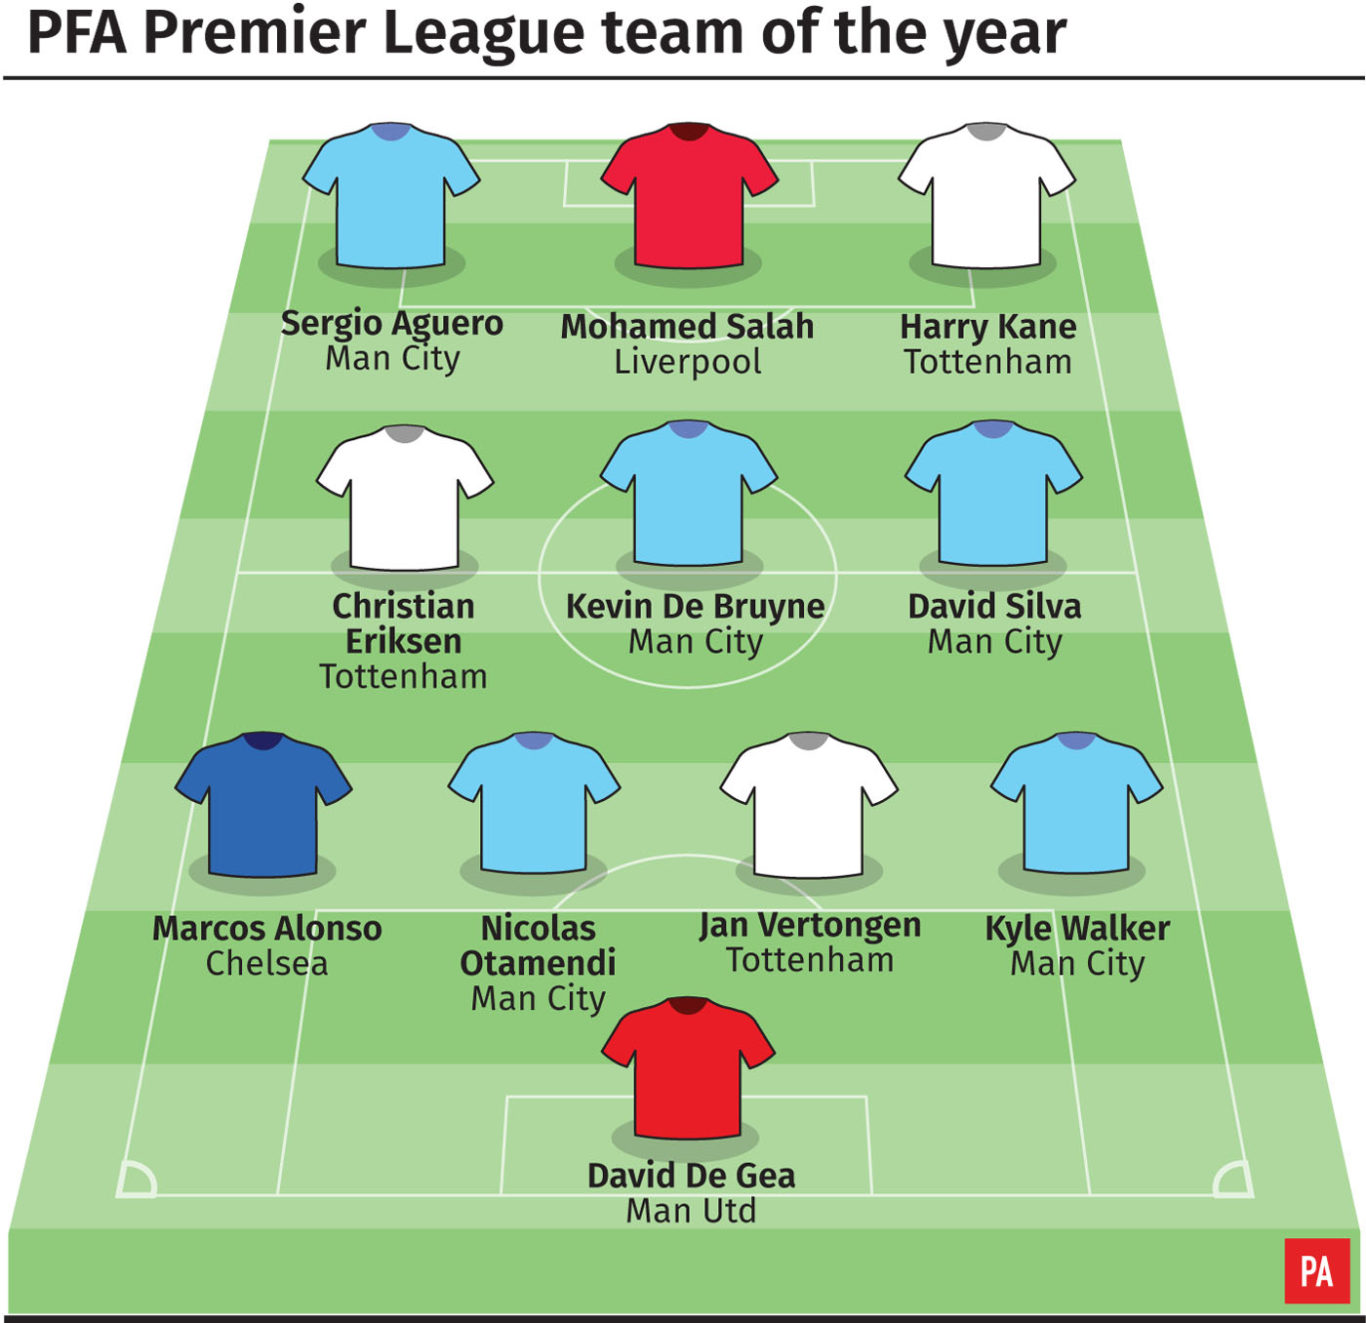 PFA Team Of The Year: Liverpool's Mohamed Salah Earns Spot